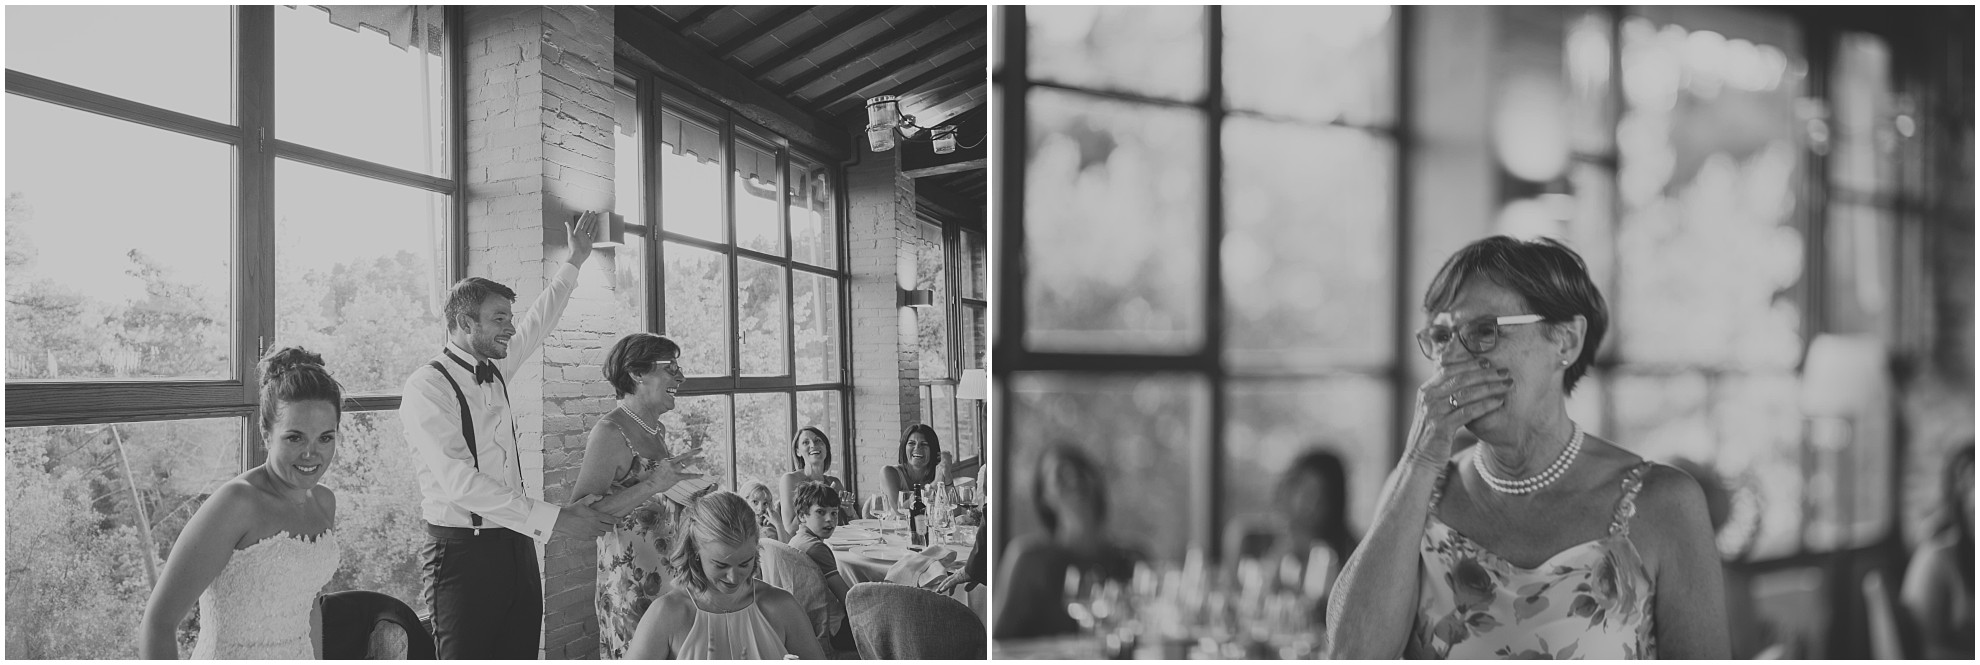 tuscany-wedding-photographer-081